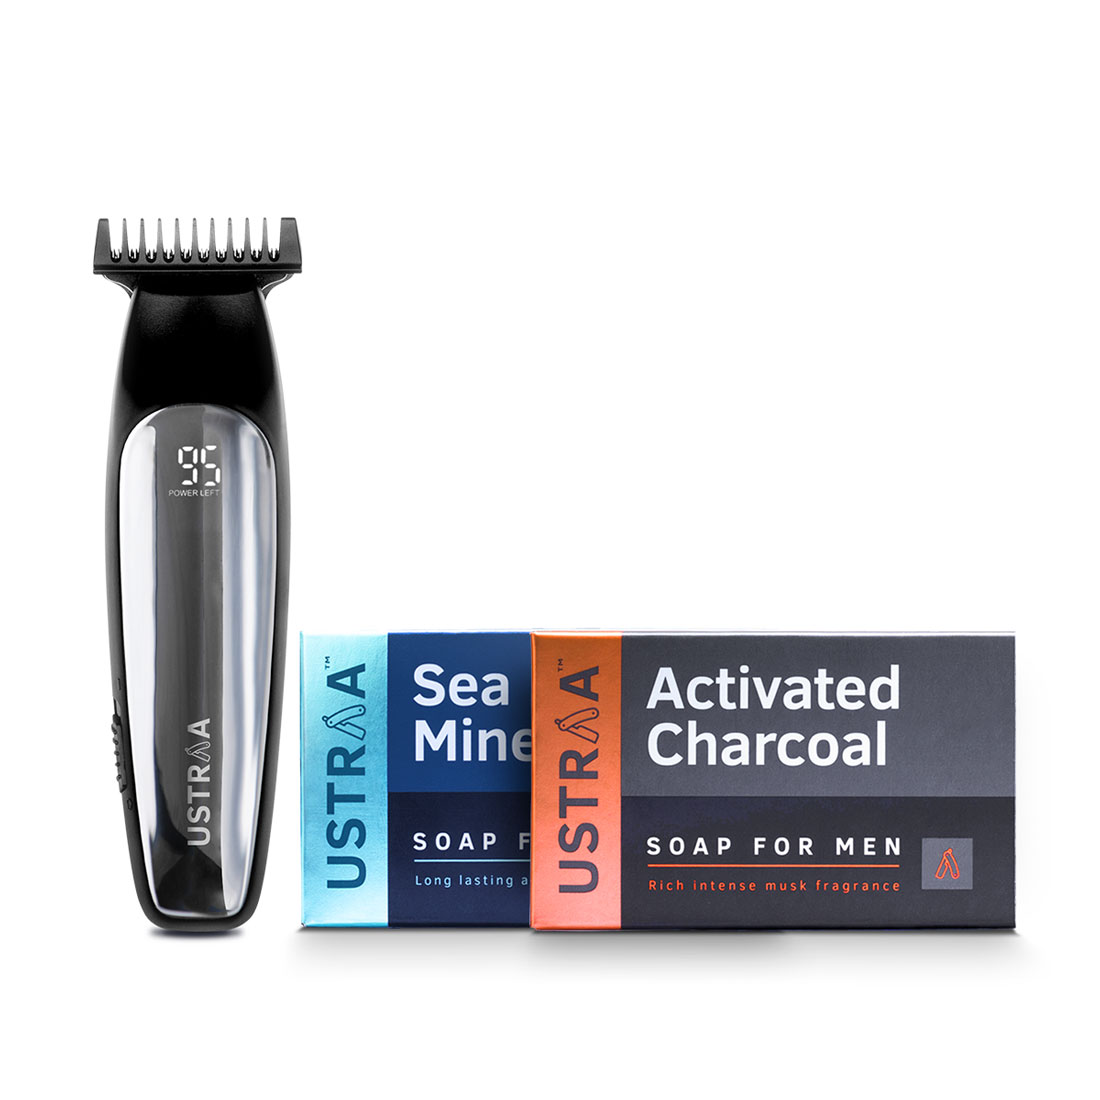 Ustraa Chrome - Lithium Powered Beard Trimmer and 2 New Ustraa Deo Soaps